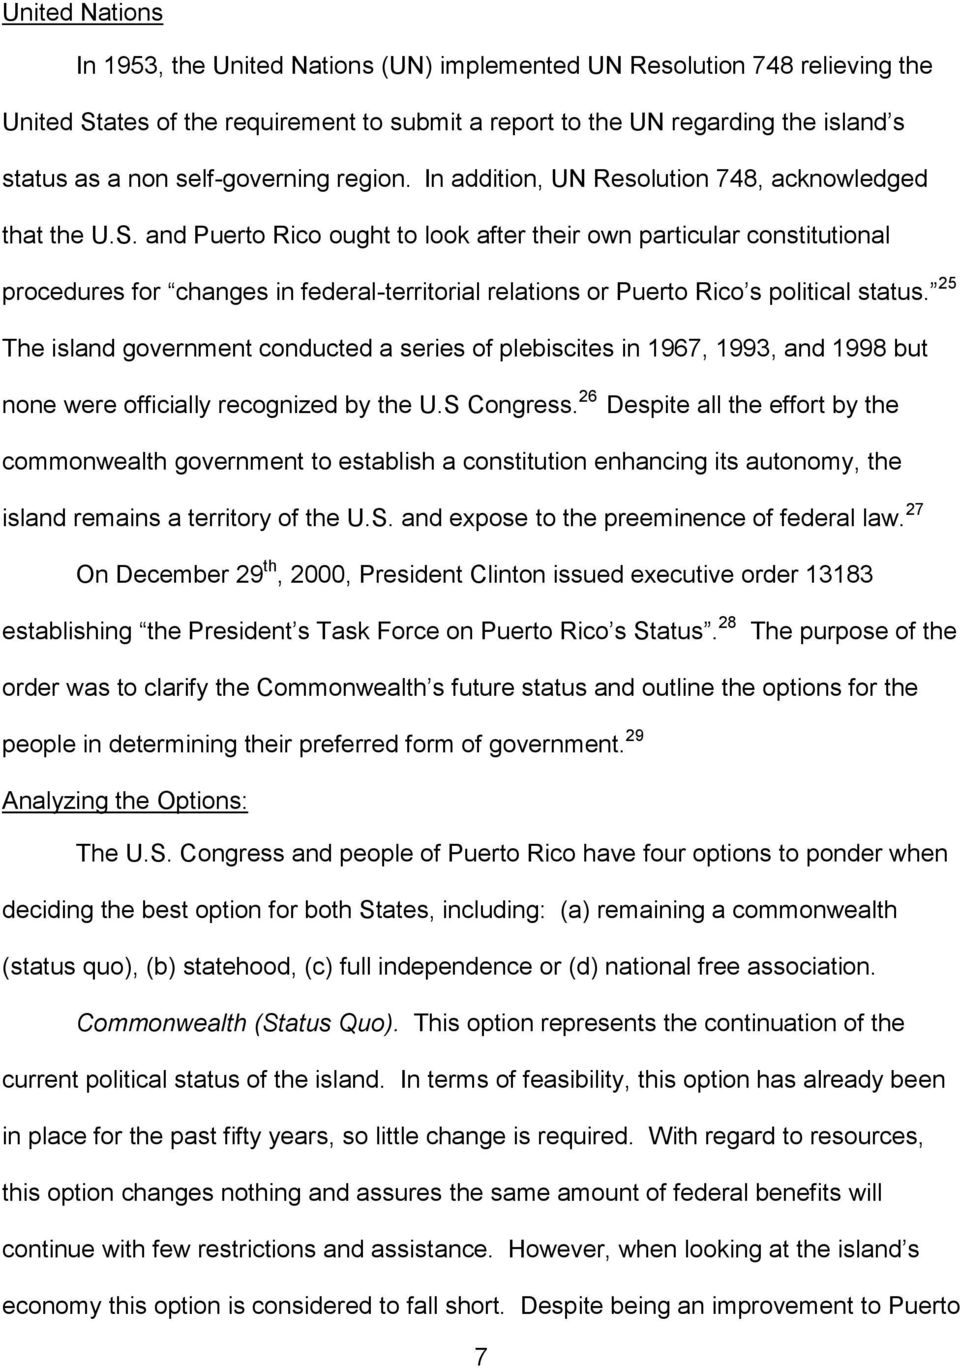 and Puerto Rico ought to look after their own particular constitutional procedures for changes in federal-territorial relations or Puerto Rico s political status.